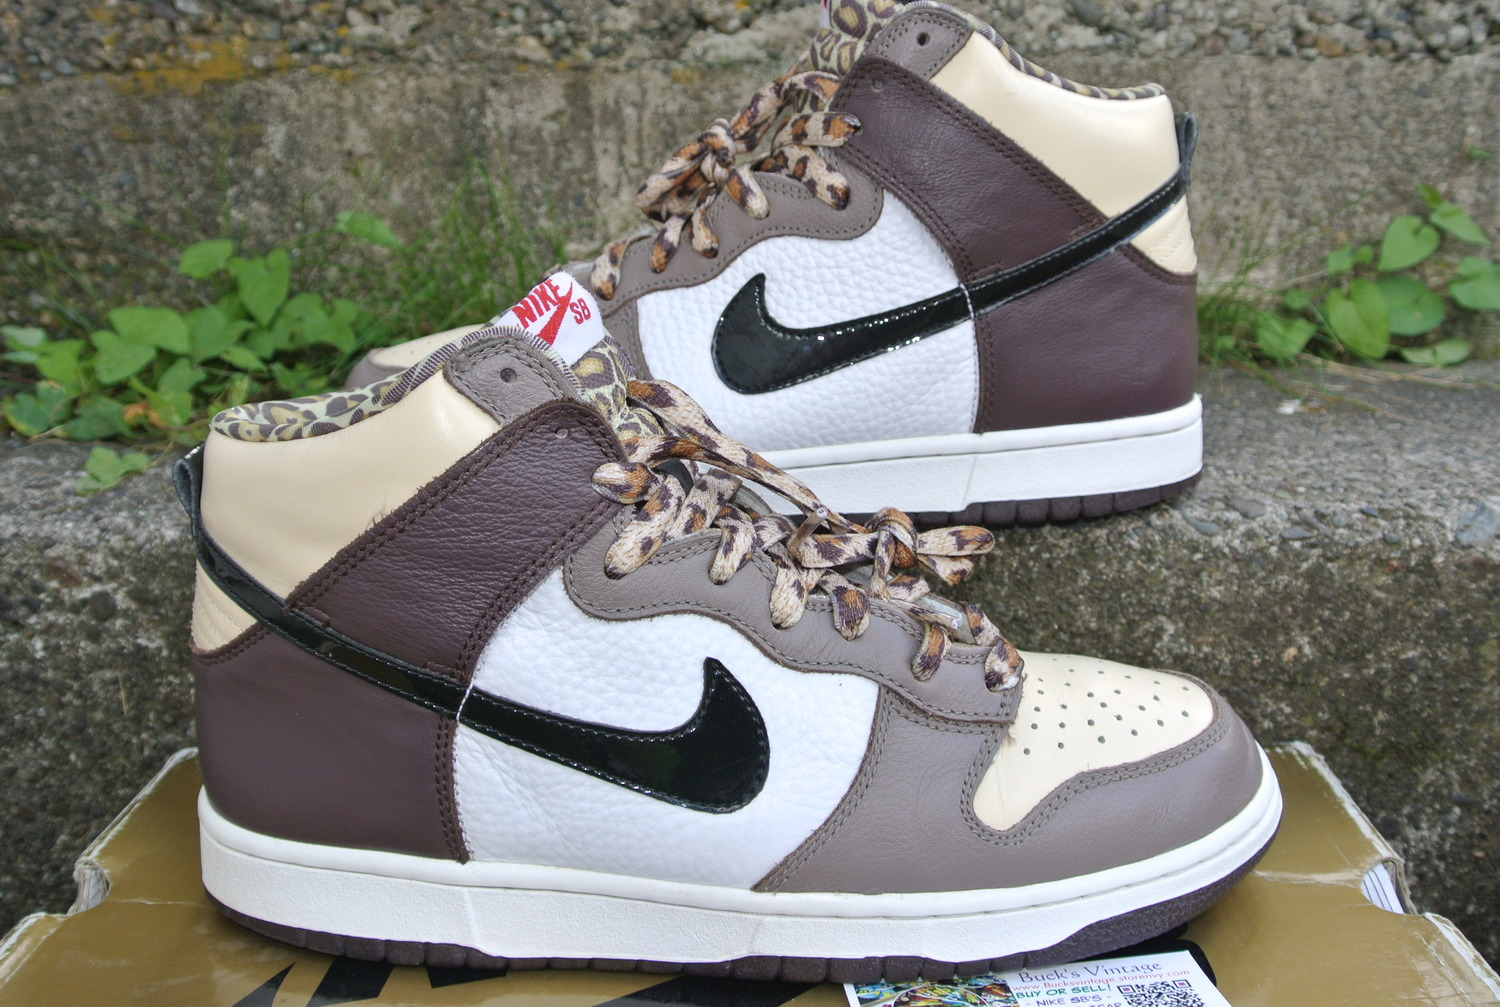 new products 37b37 3d1e6 discount code for nike dunk ferris bueller d6406 cee32